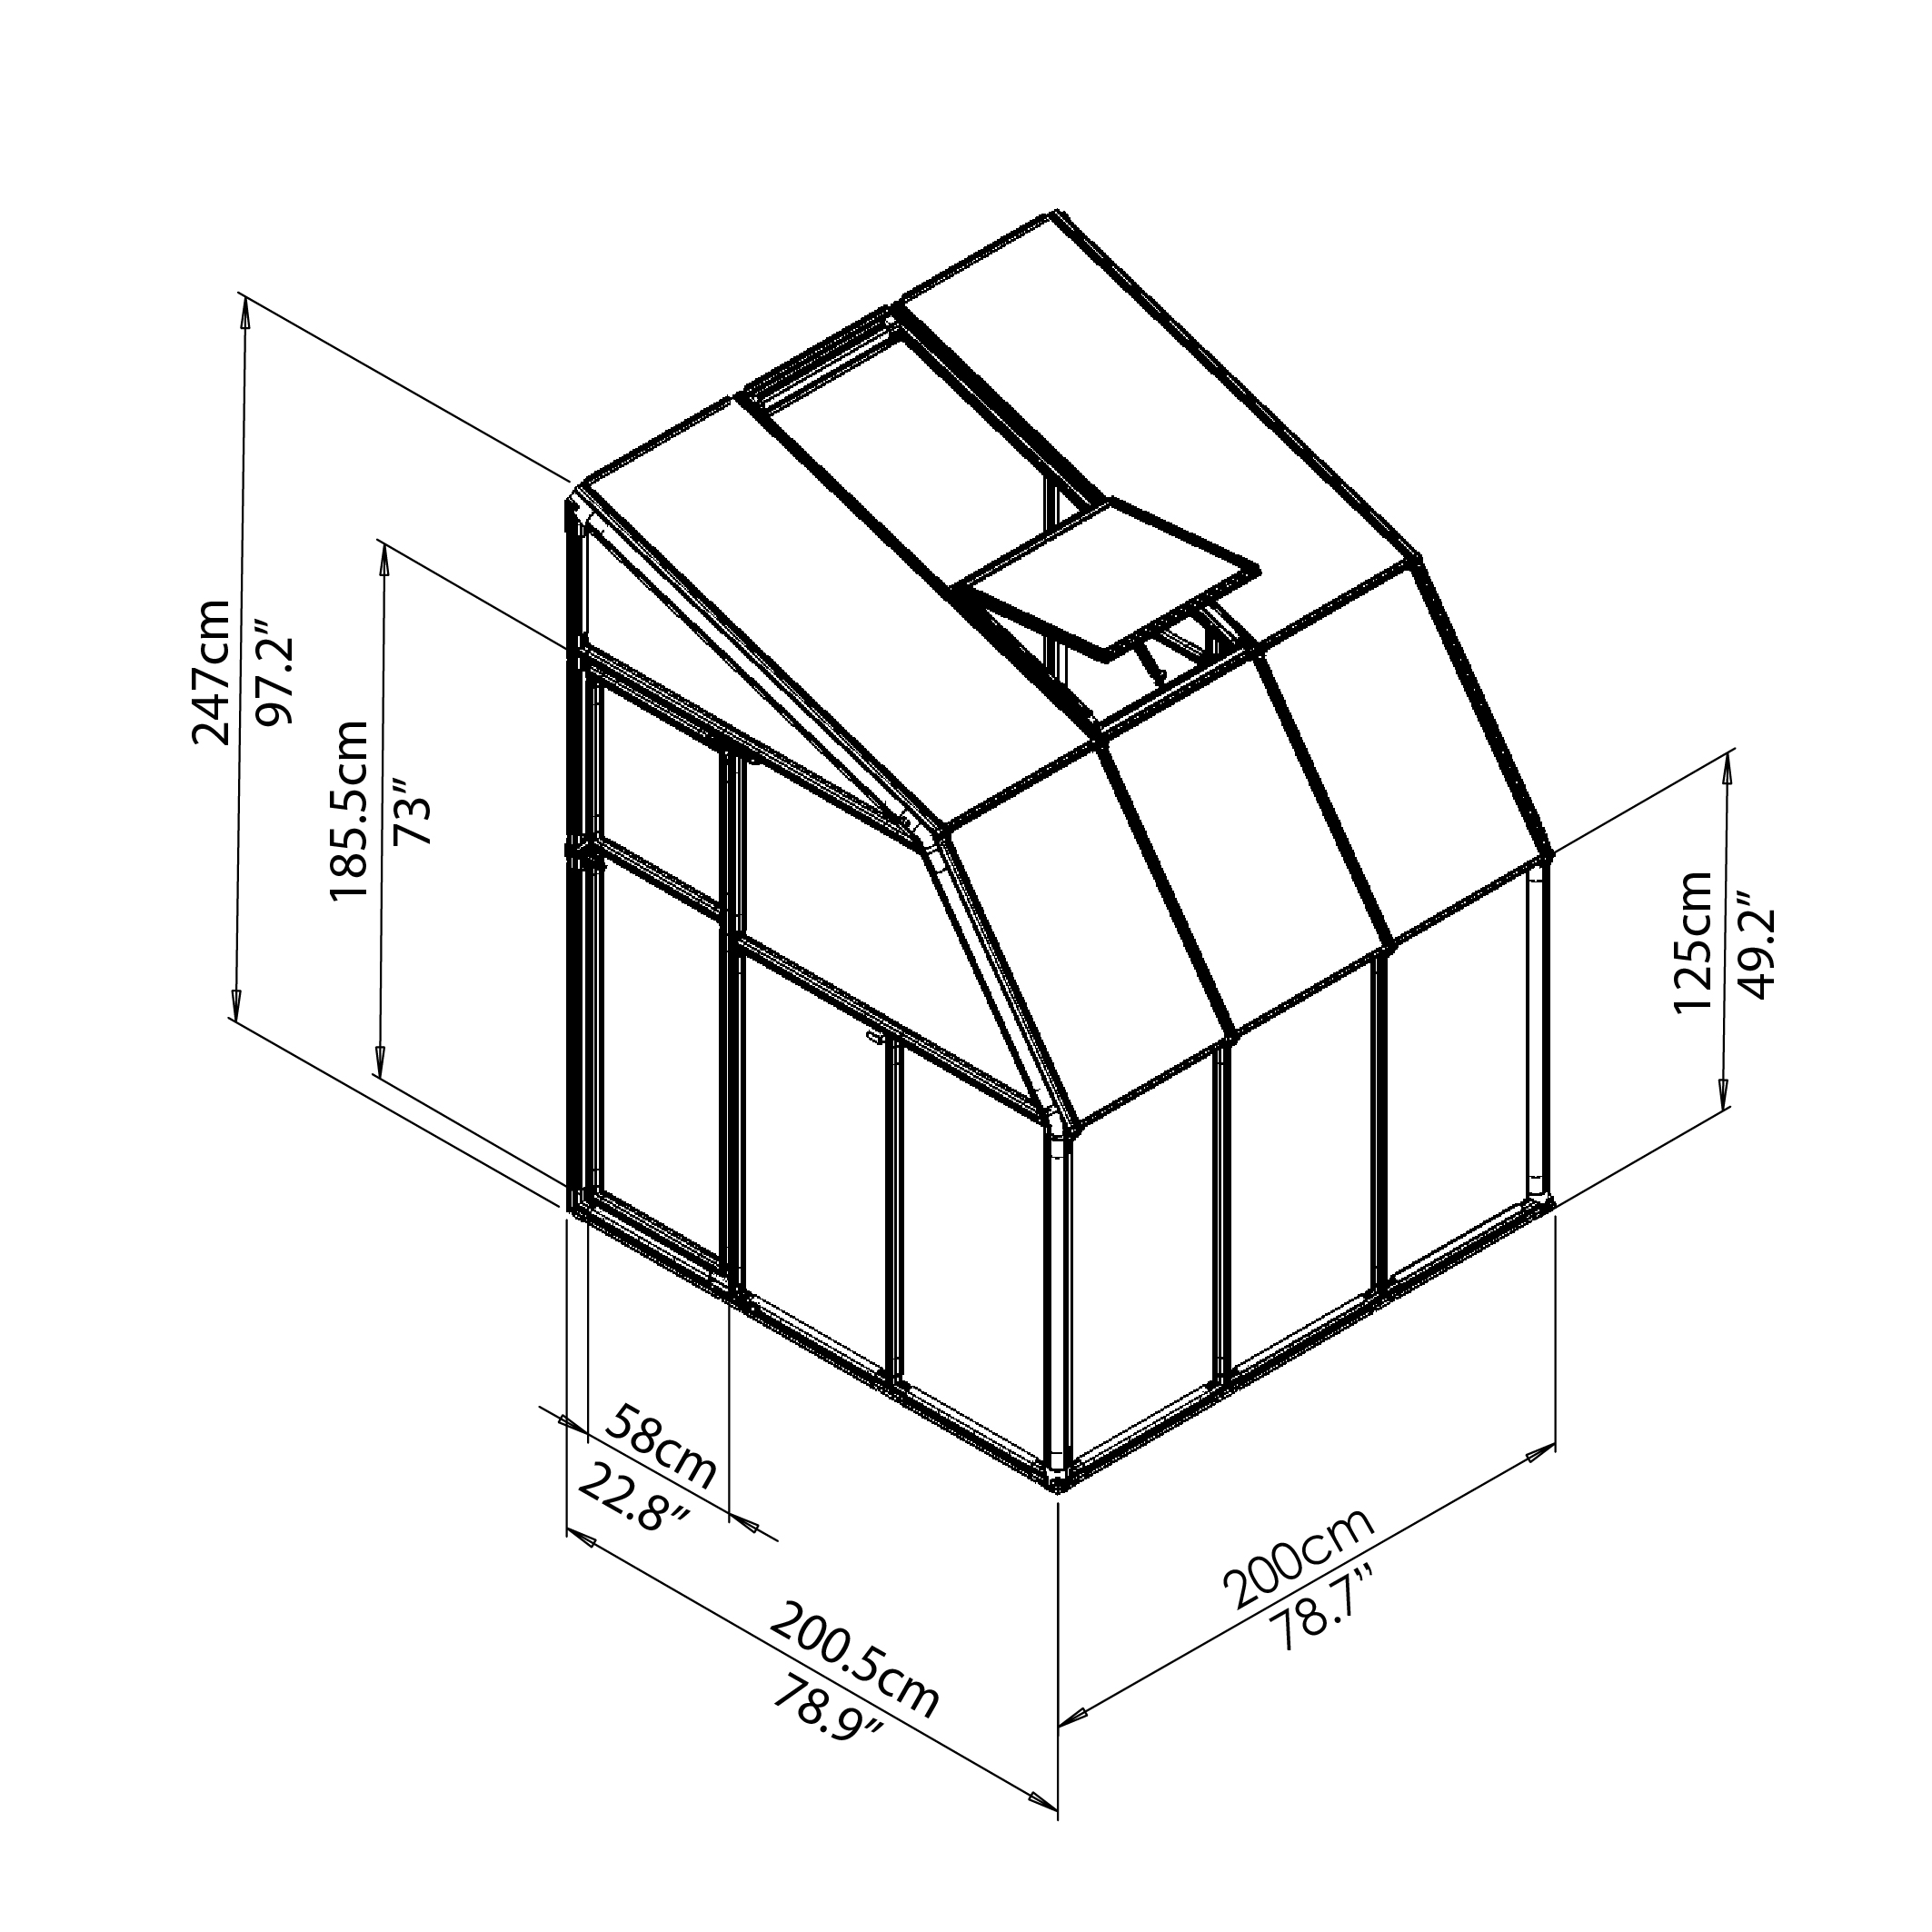 rion-greenhouses-sun-lounge-6x6-drawing-isoview.jpg